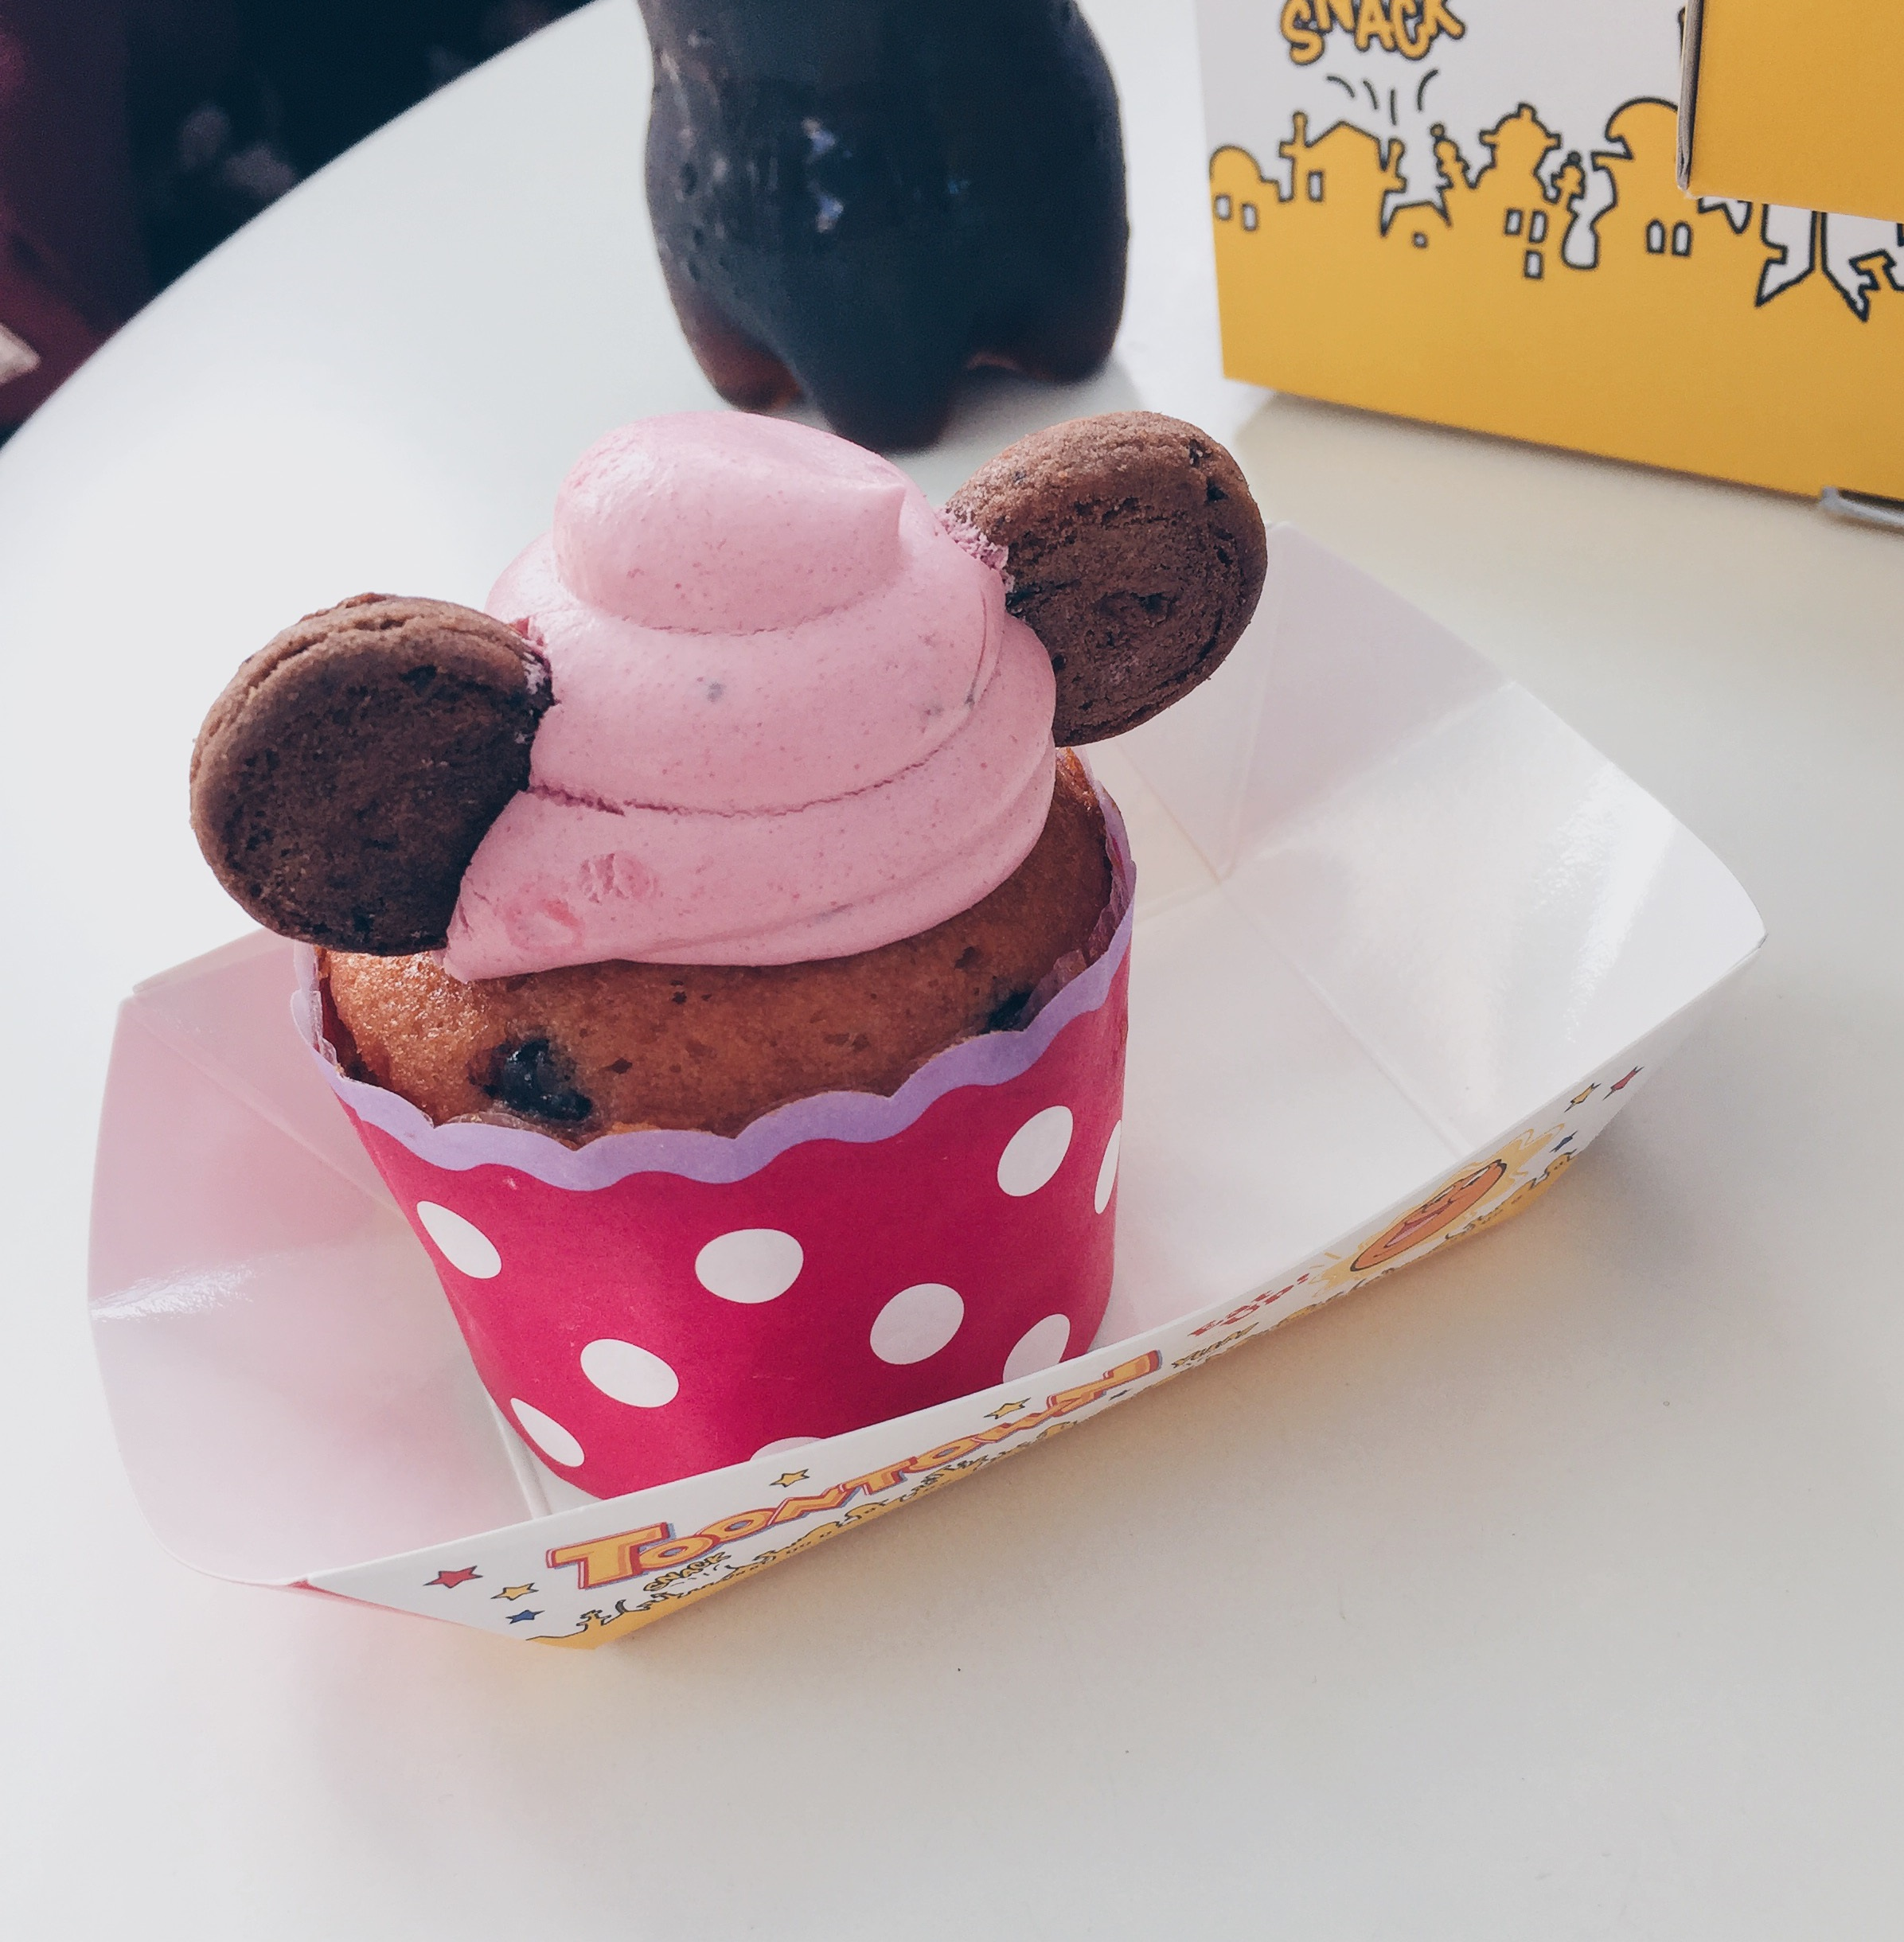 Japan, Tokyo Disneyland - Huey, Dewey and Louie's Good Time Cafe - Strawberry Chocolate Chip Muffin - helloteri